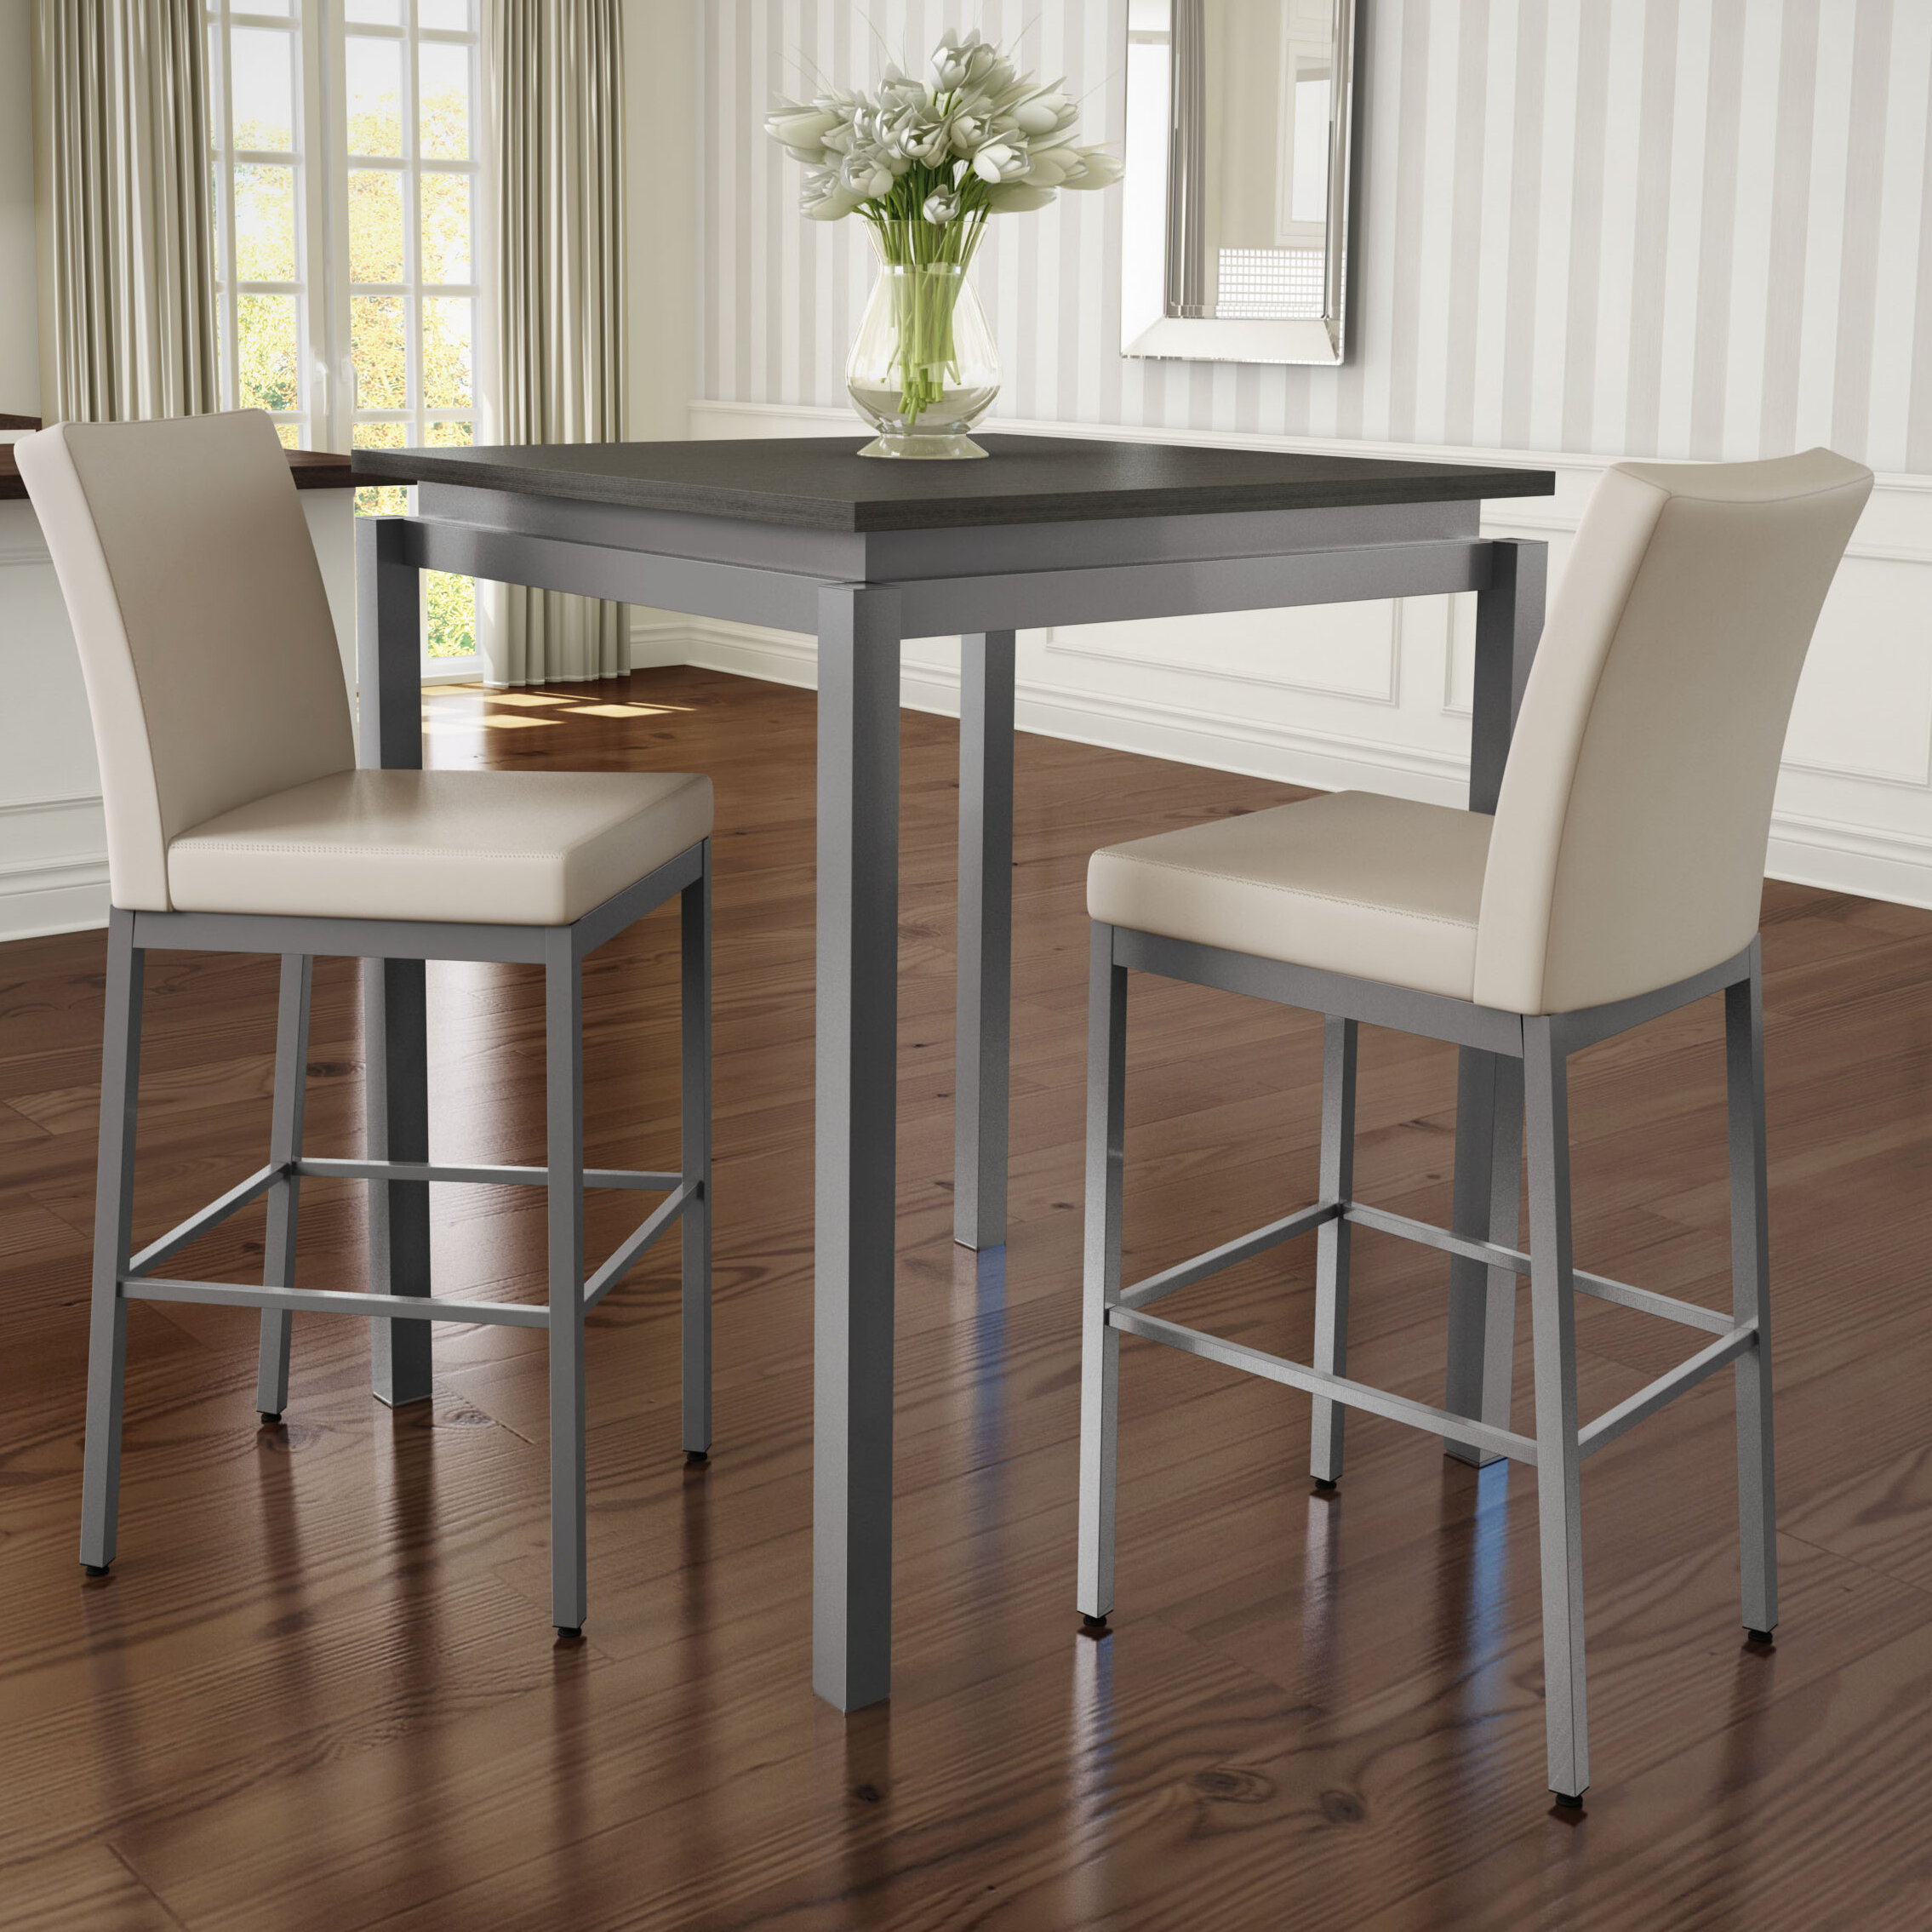 Latitude Run Wilma 3 Piece Pub Table Set | Wayfair